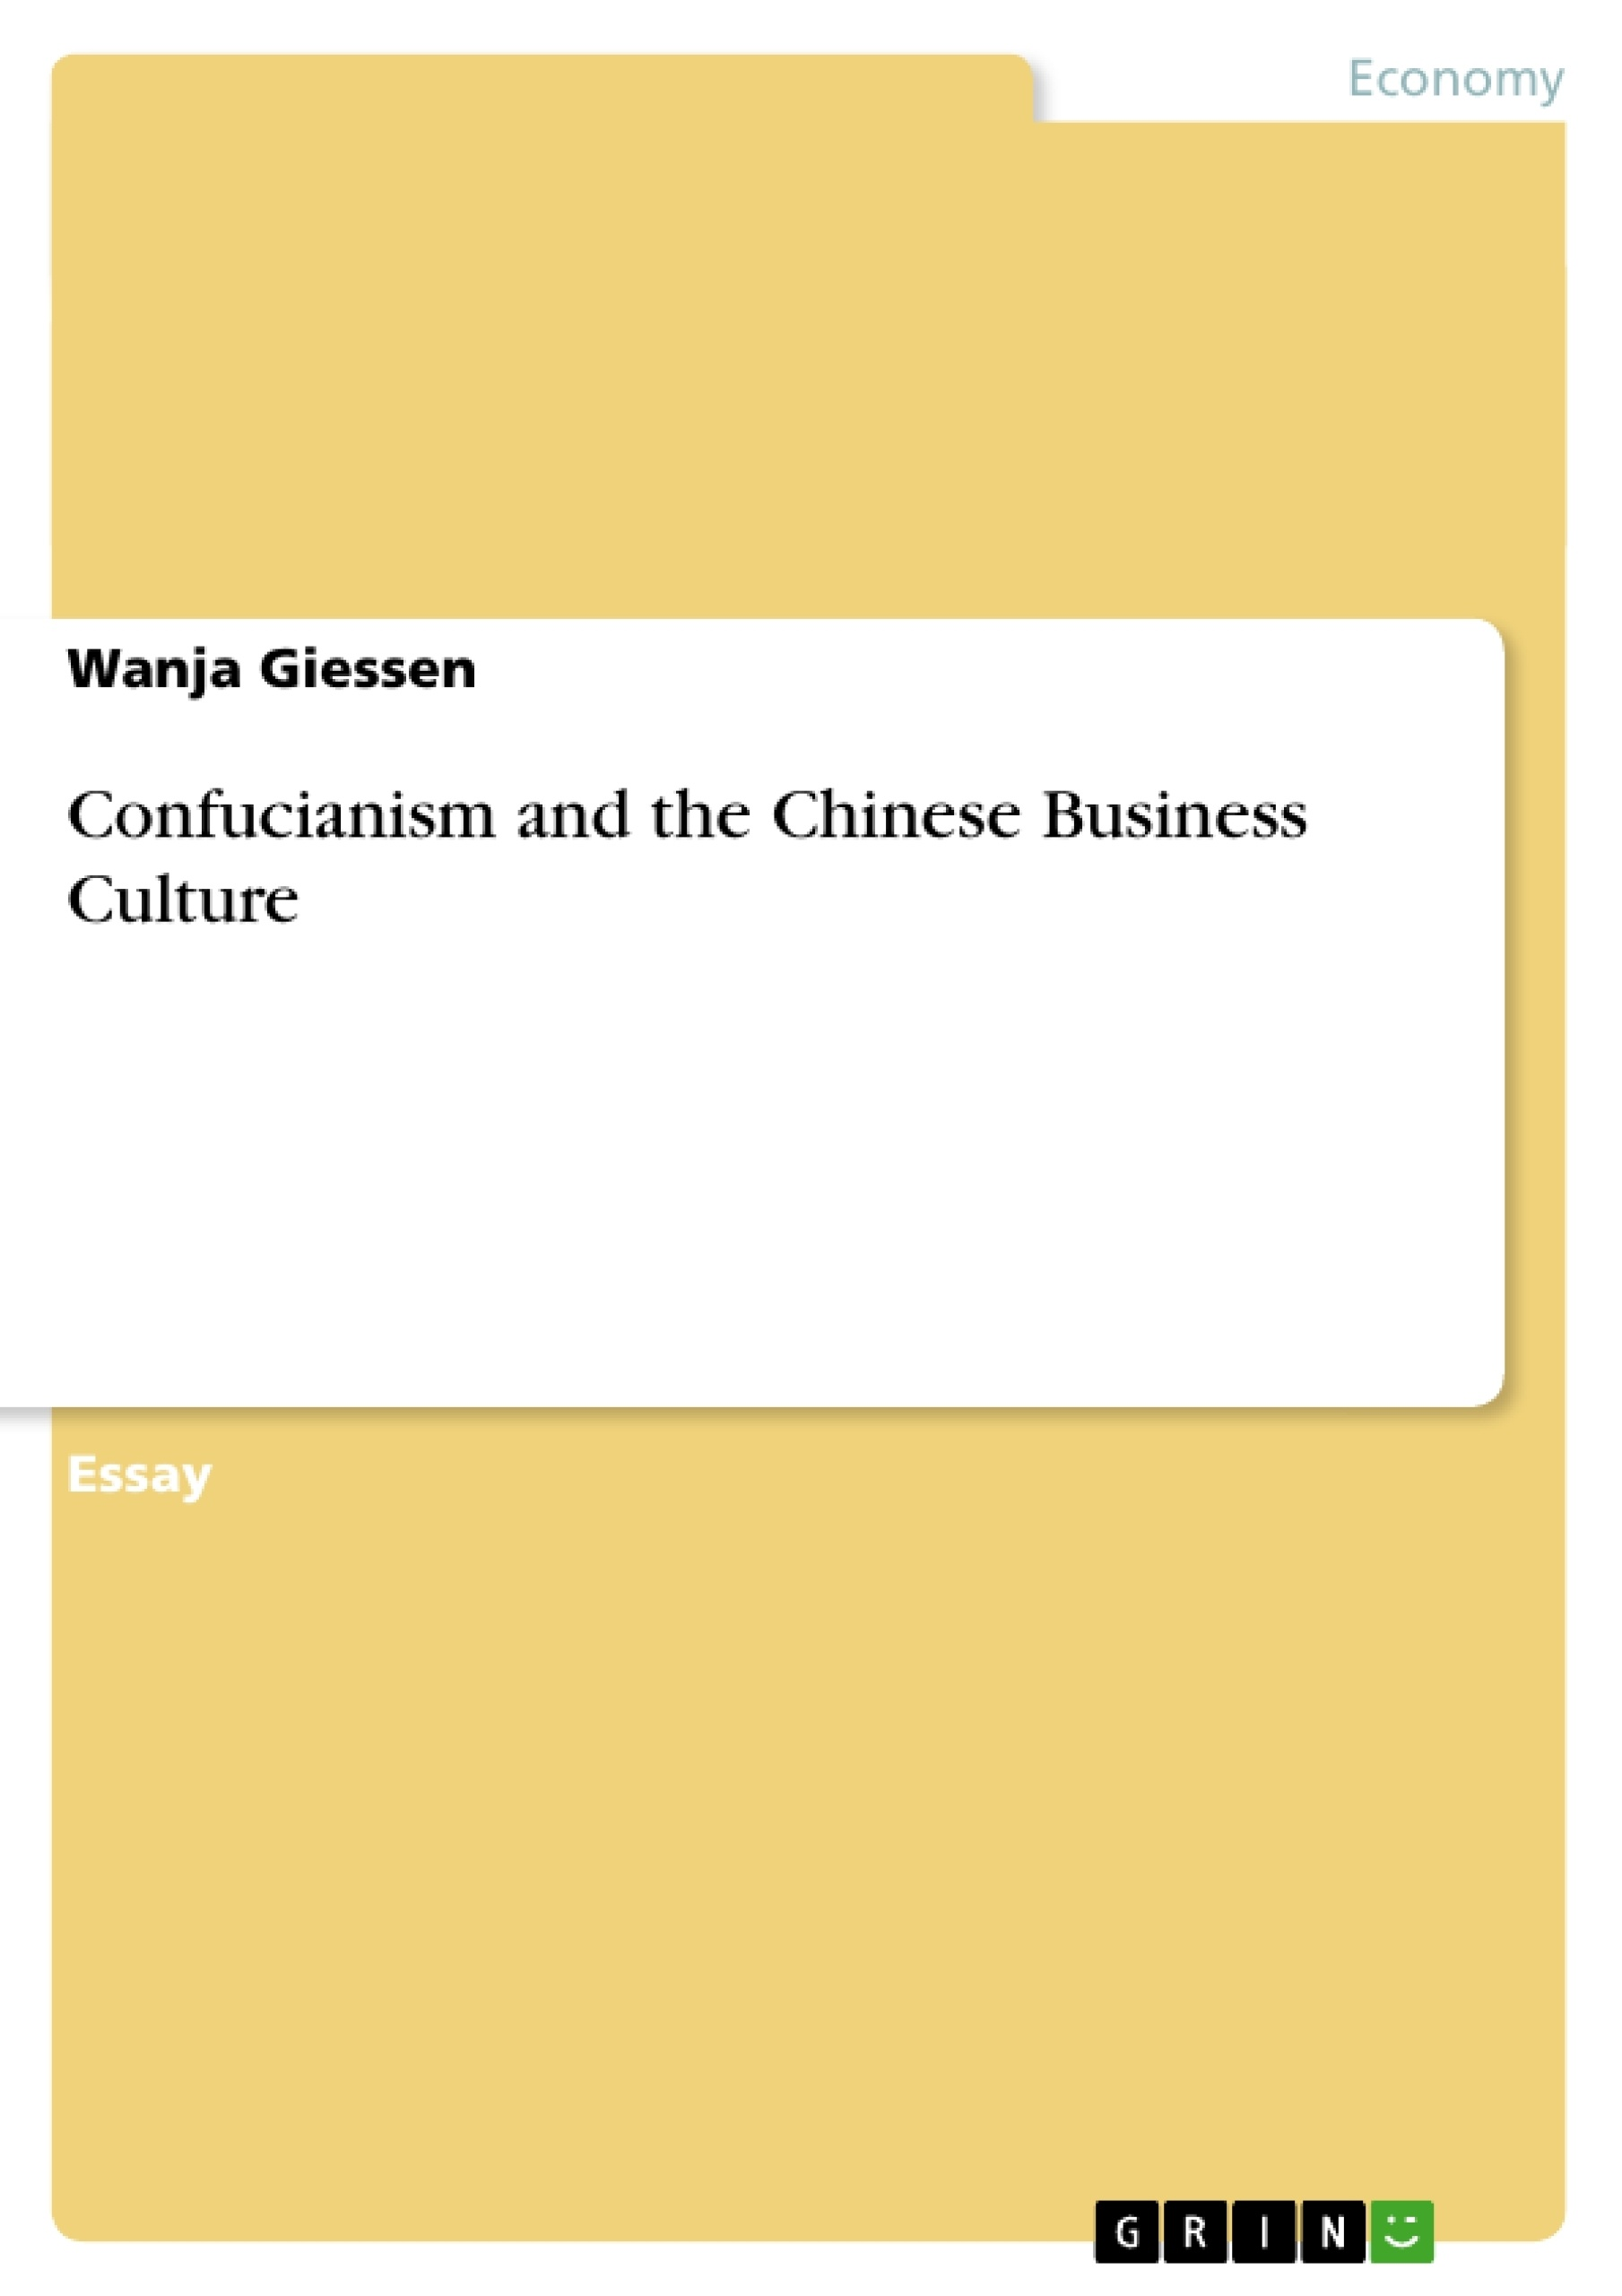 confucianism and the chinese business culture publish your  upload your own papers earn money and win an iphone x